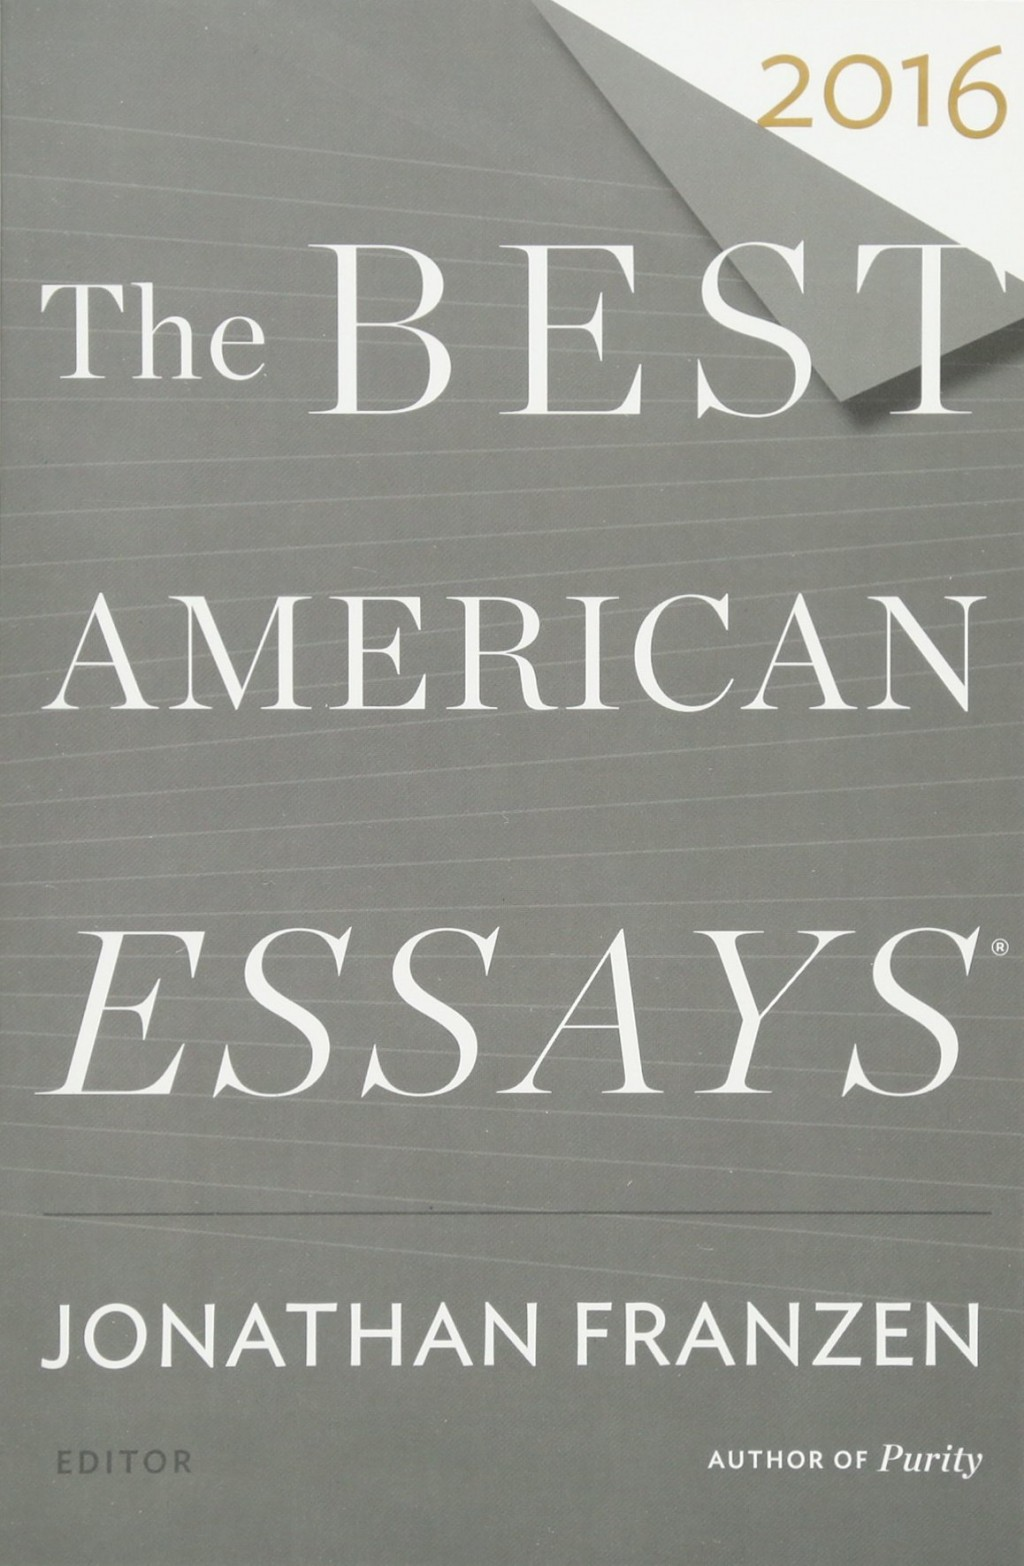 009 71a6bhsgsdl The Best American Essays Of Century Essay Imposing Contents Summaries Large